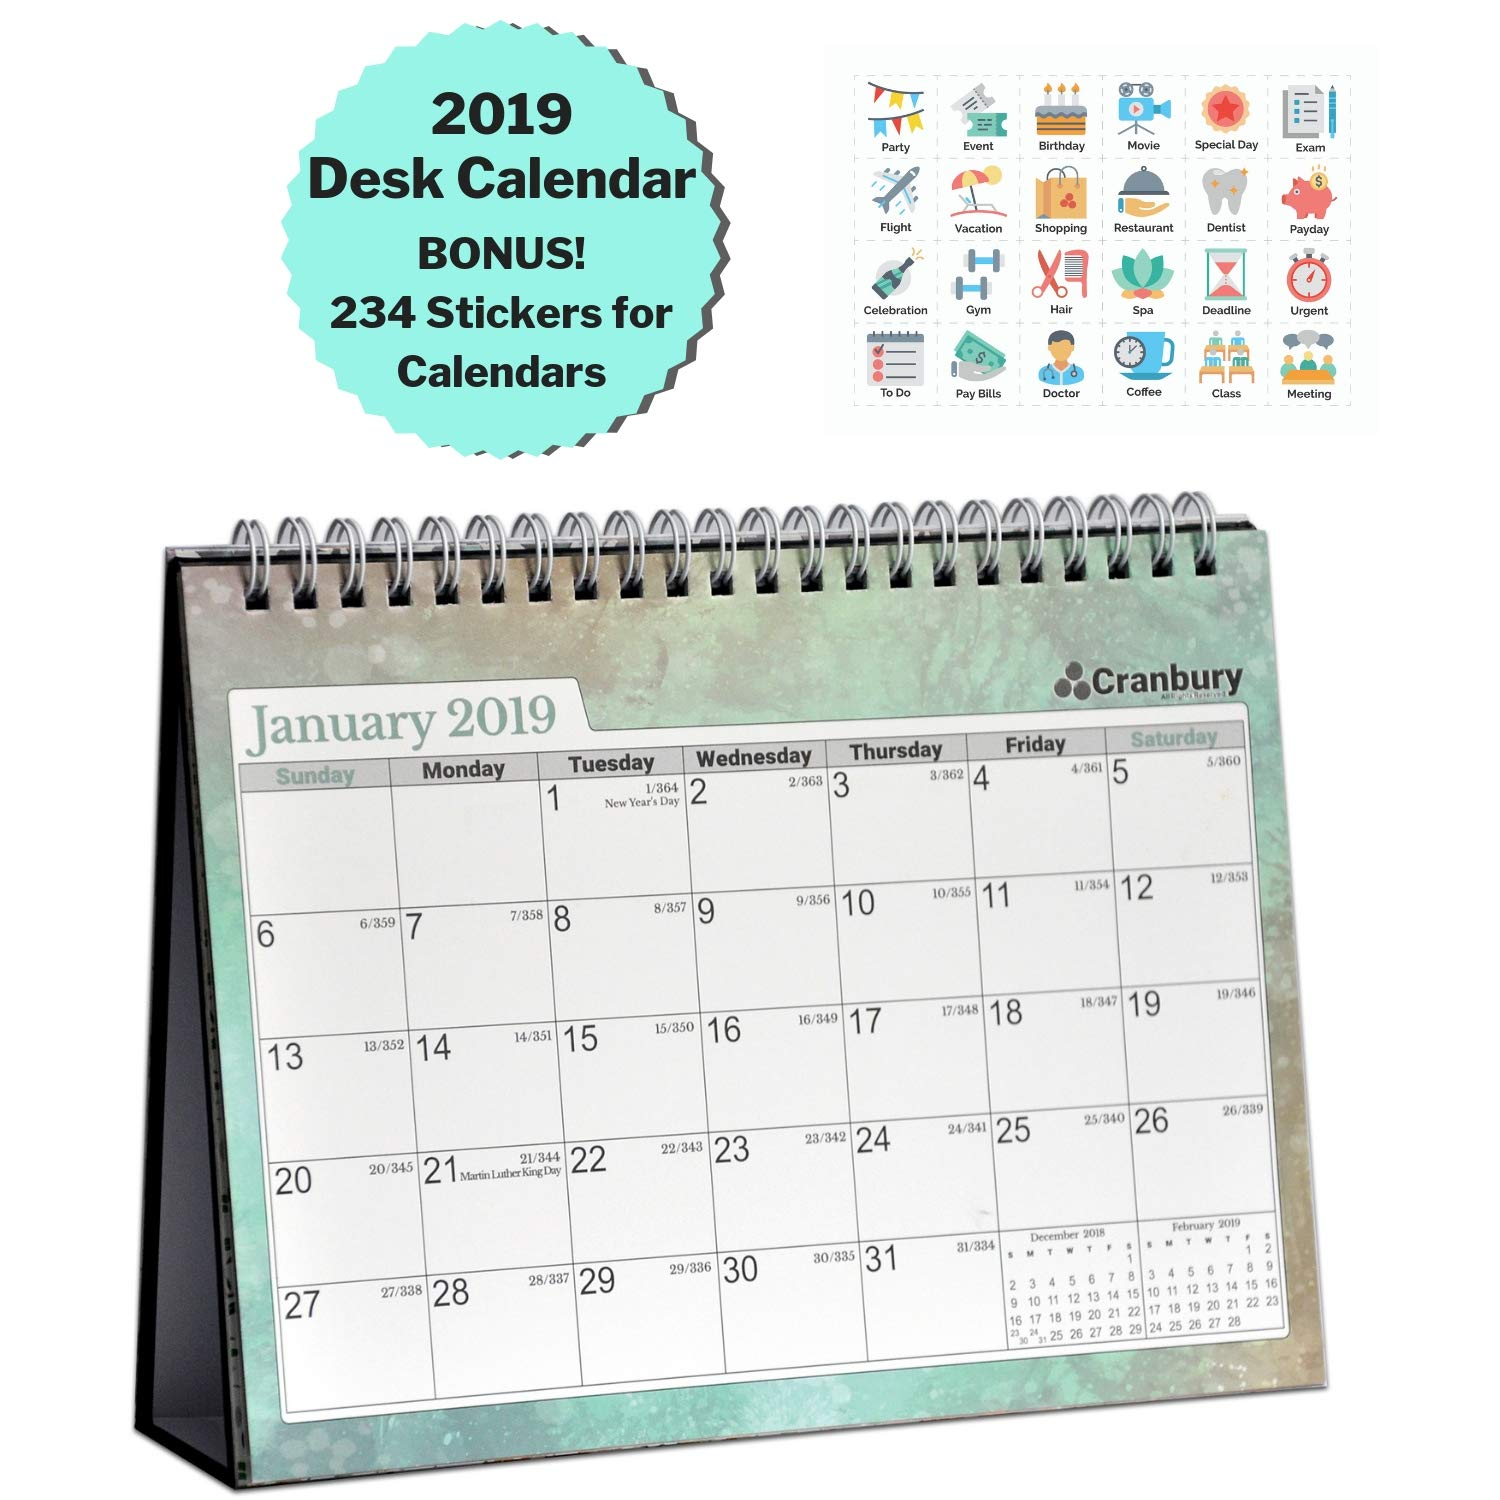 Cranbury Small Desk Calendar 2019 Monthly: Flip Desktop Counter Top Calendars with Bonus Planner Stickers for Family and Office, 8''x6'' (Colorful), Sturdy, USE Now Through December 2019 by Cranbury (Image #1)